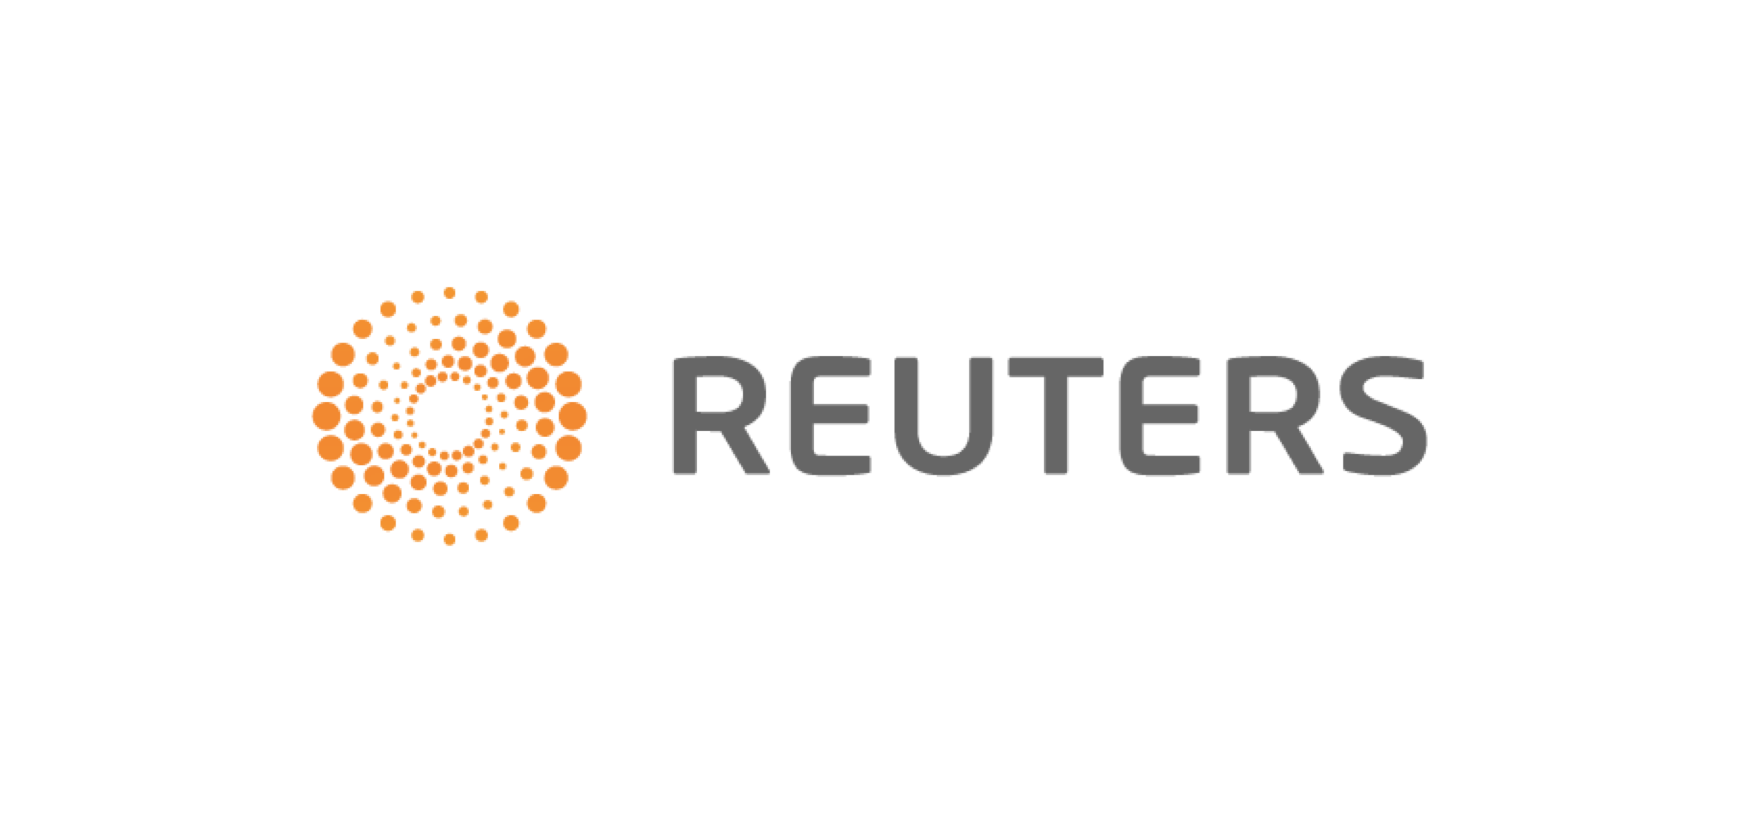 Reuters: Study warns of rising hacker threats to SAP, Oracle business software